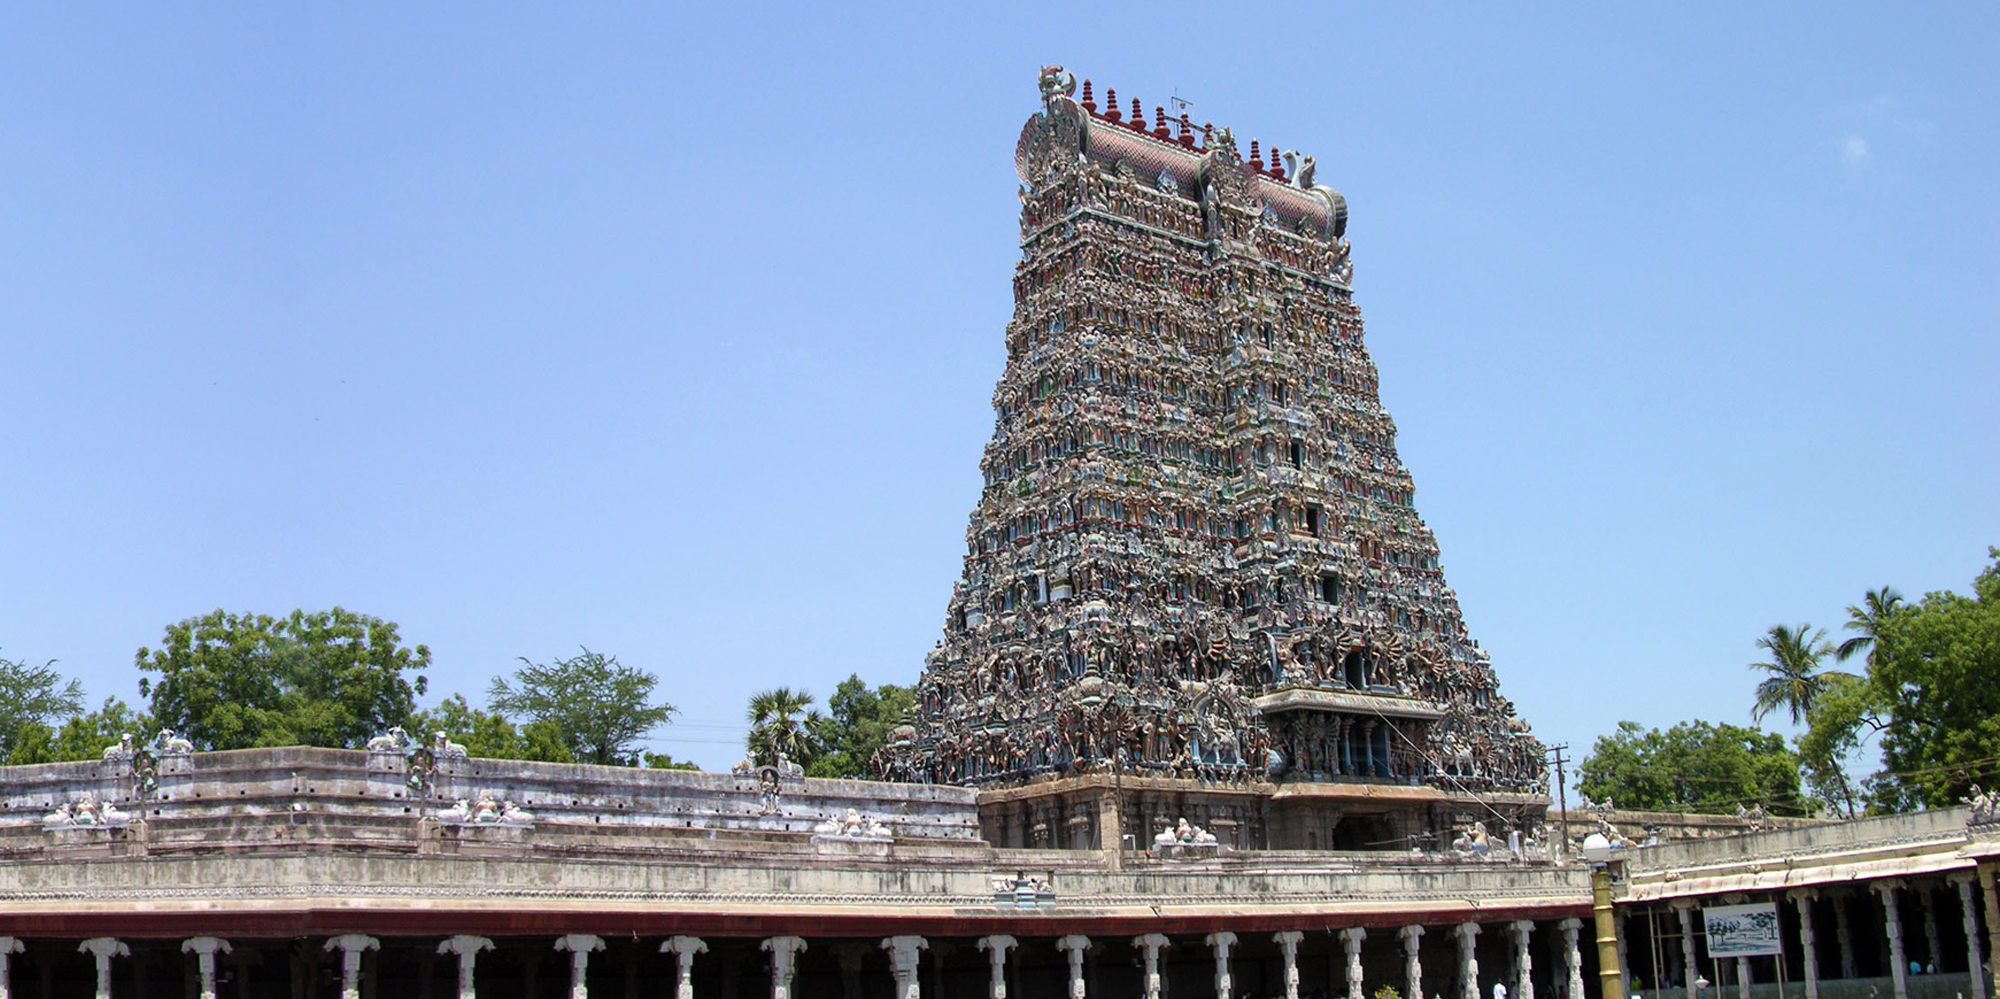 <strong>Meenakshi Temple - 1, Madurai</strong> - Pyramidal gates known as gopuras rise more than 160 feet (49 meters) into the air at the four cardinal points of the Sree Meenakshi Temple Complex. These towering gateways are entrances to the temple complex while shorter gopuras lead to the sanctums of the main dieties.